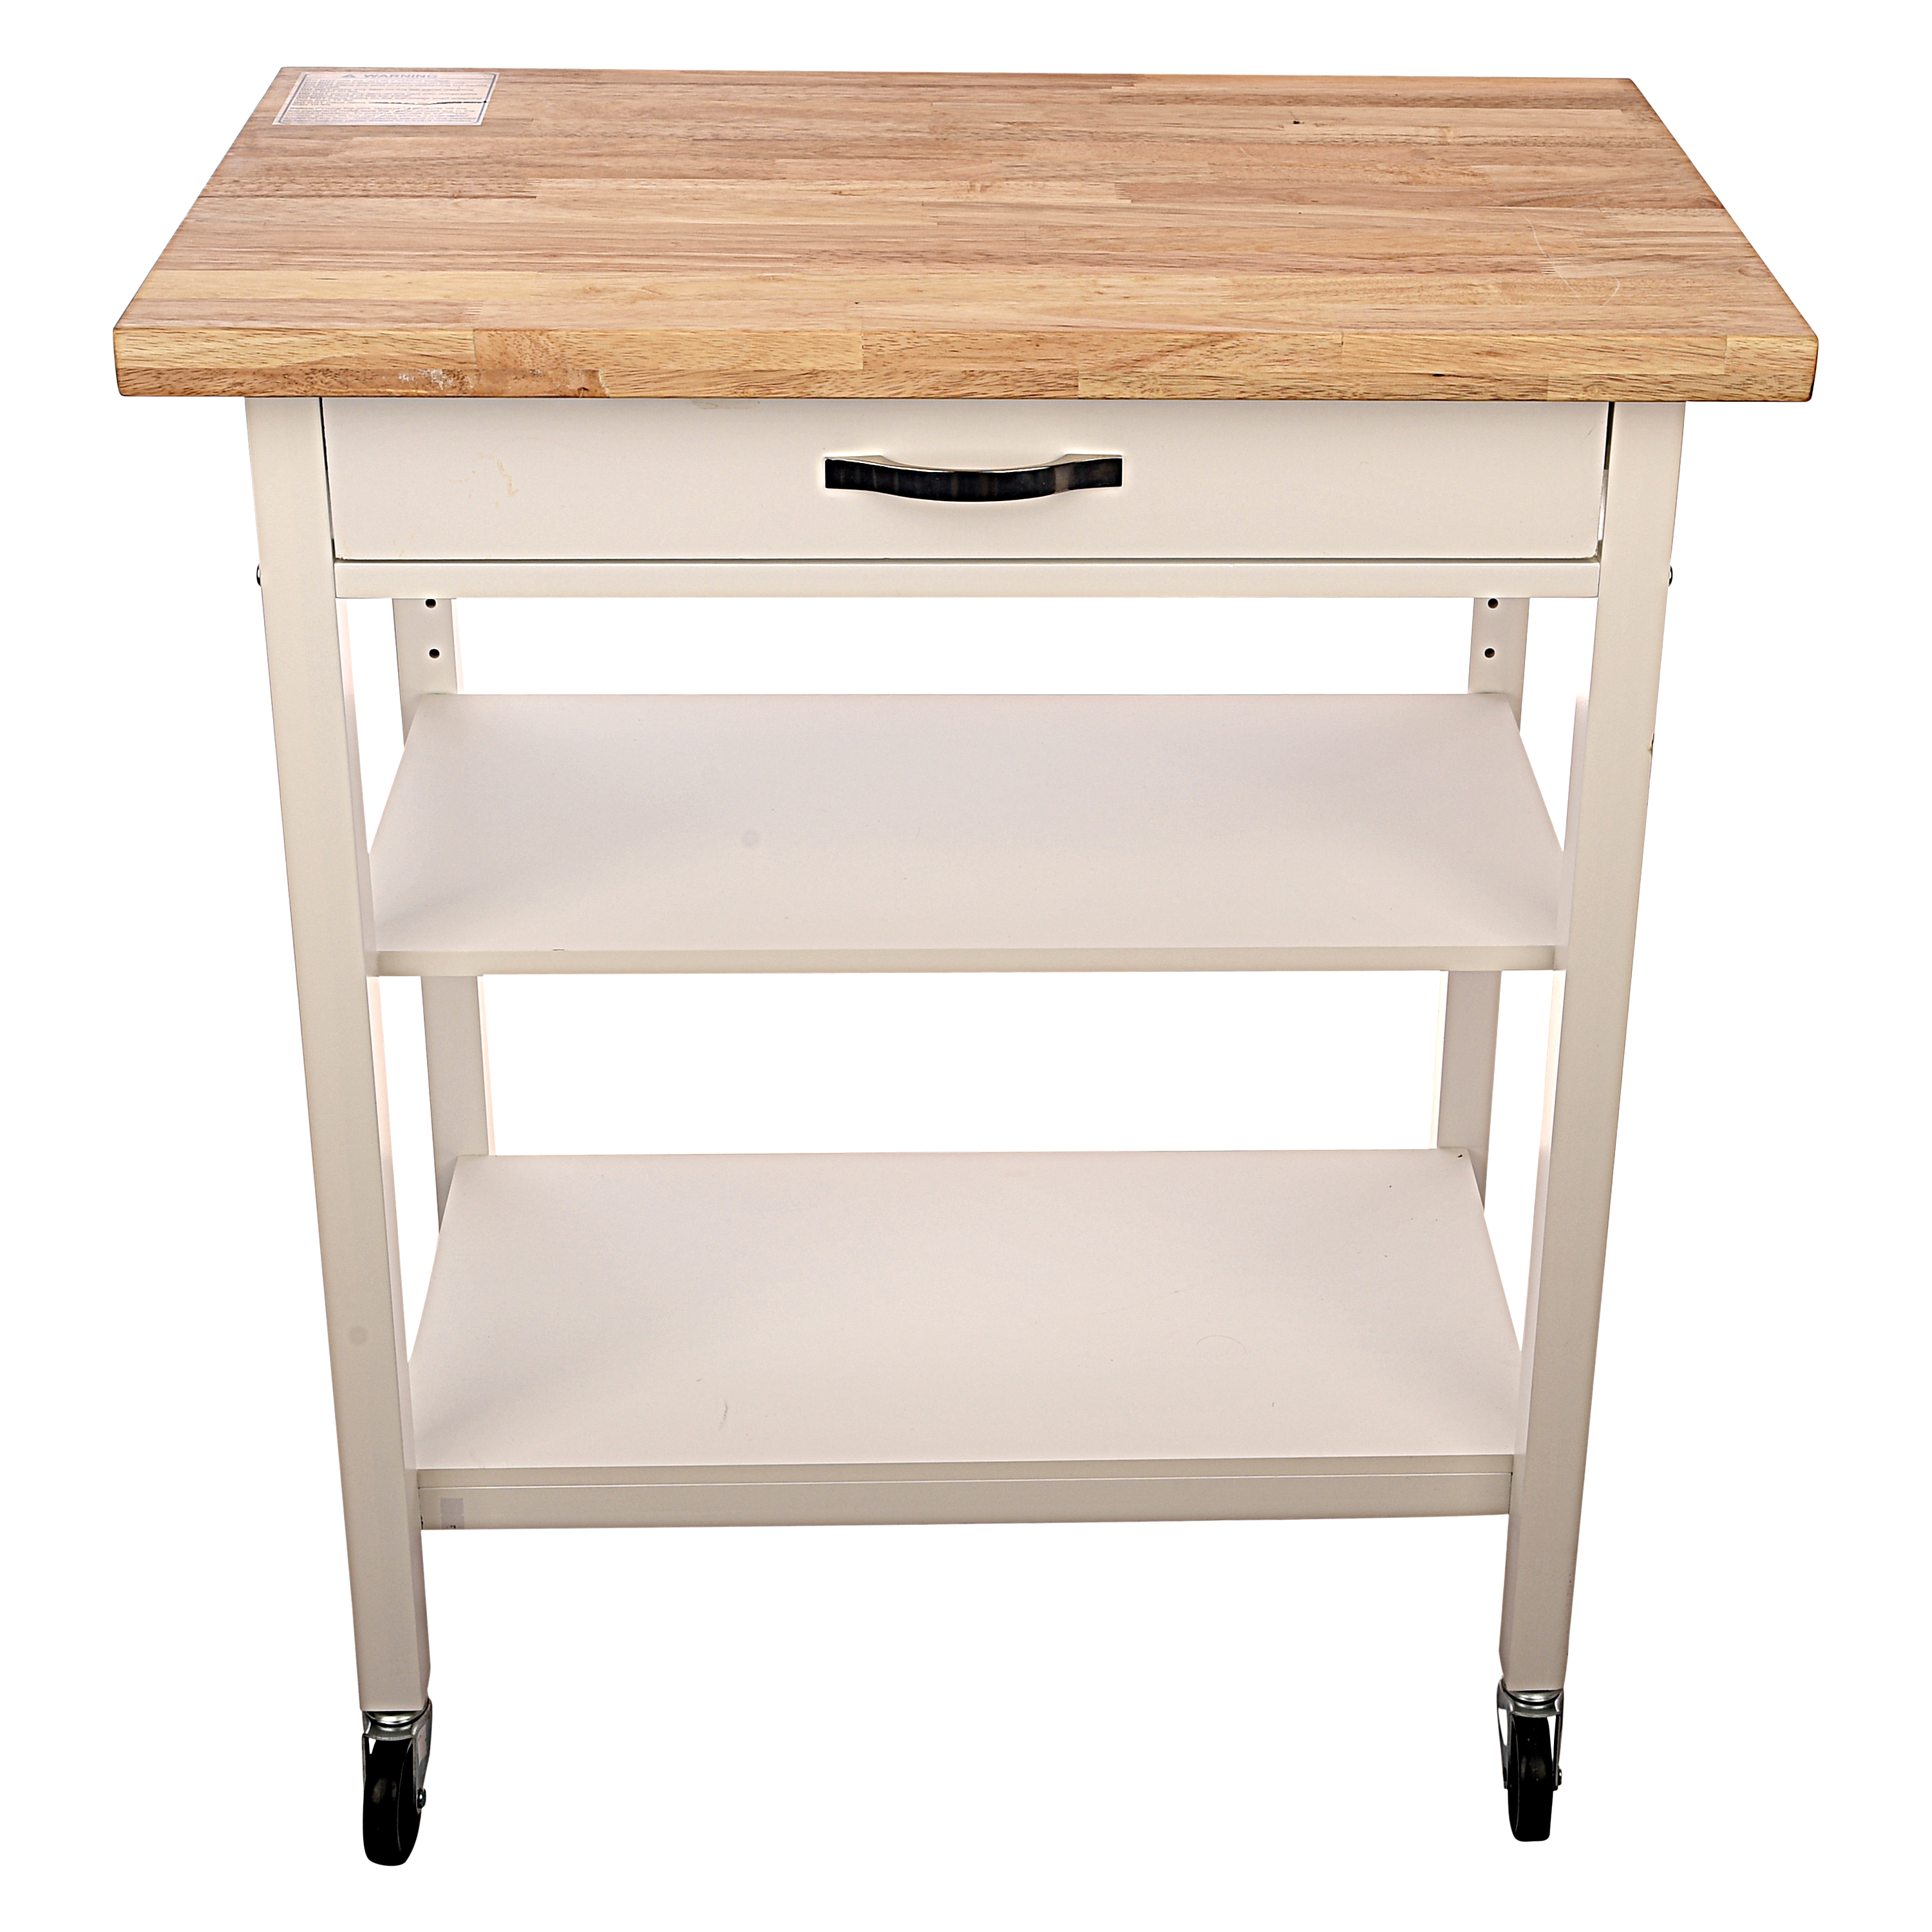 Mainstays Kitchen Island Cart, White